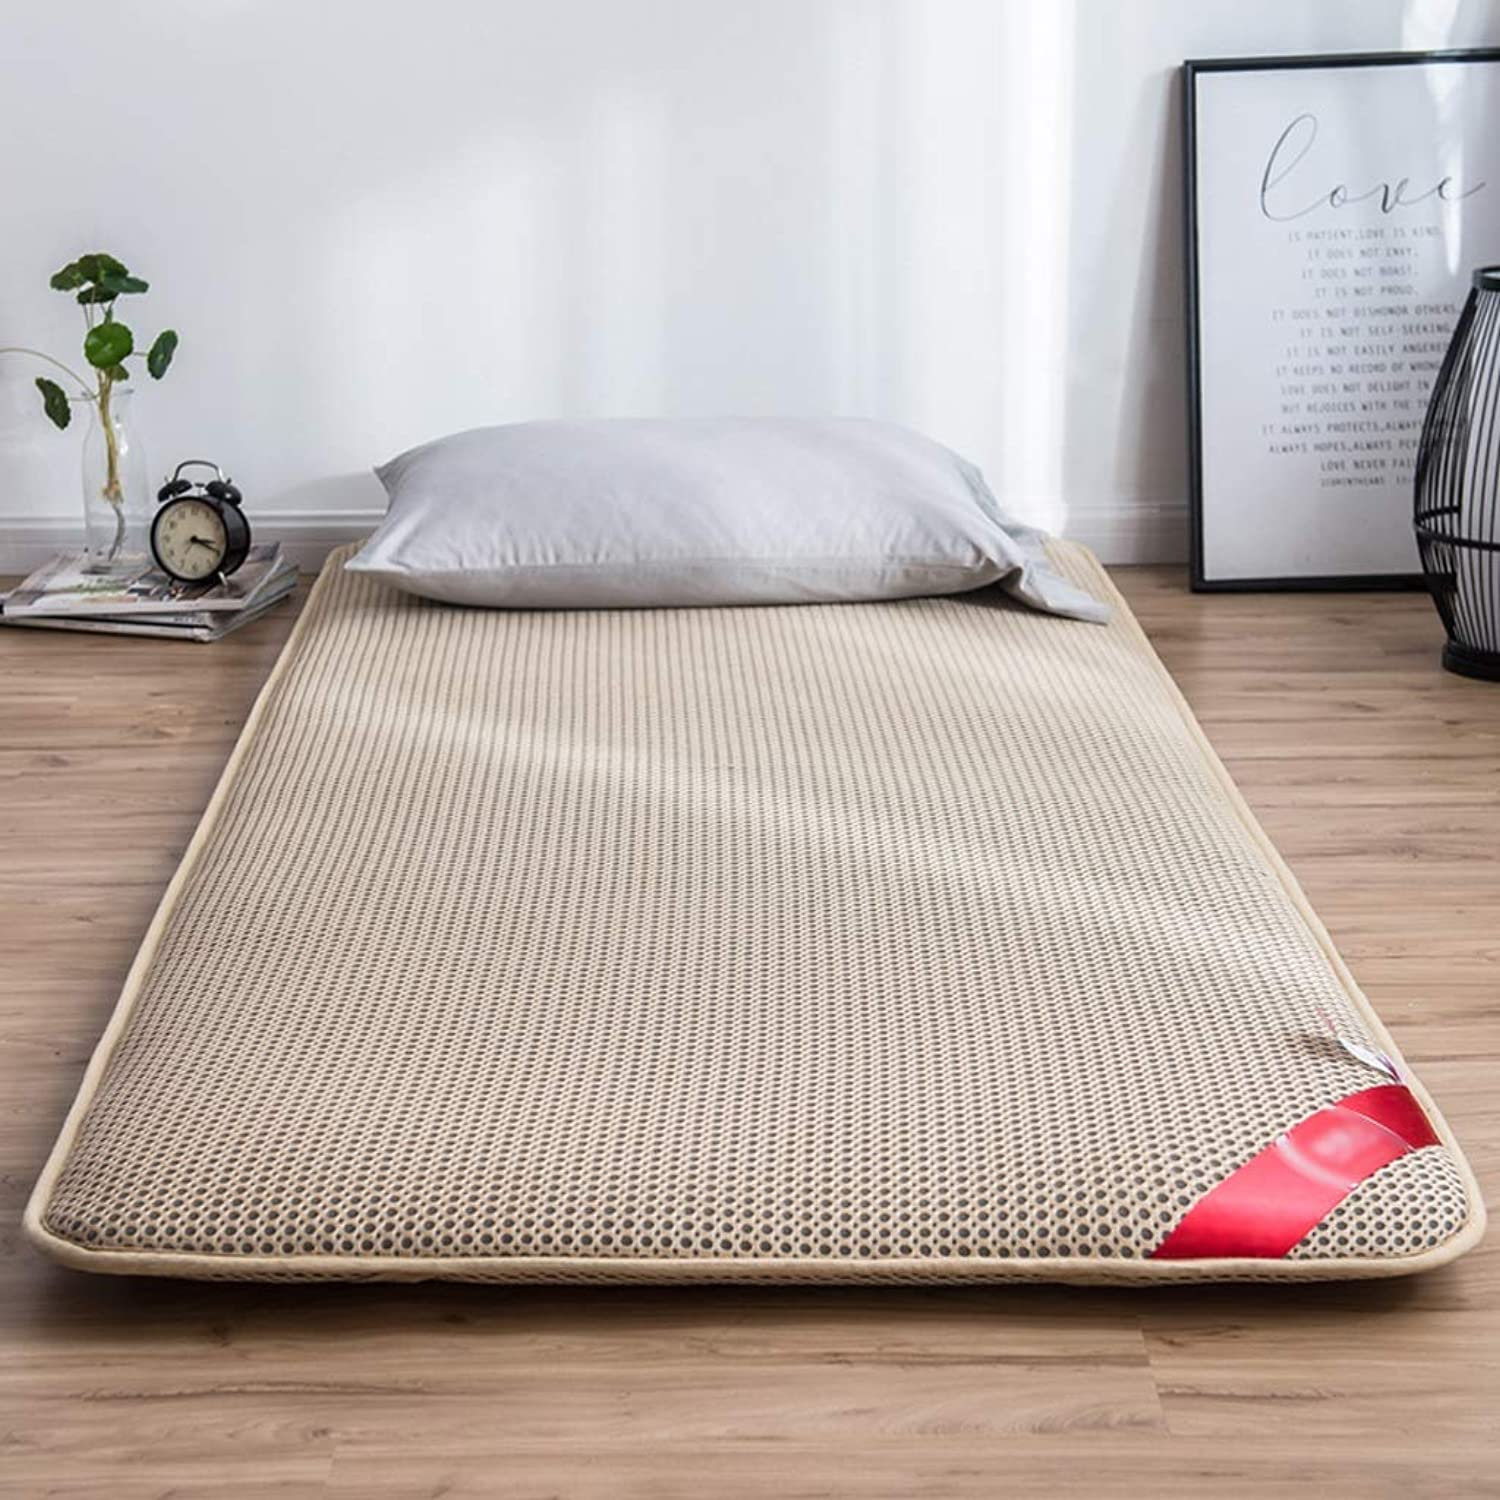 Summer Sleeping mat,3D mesh Breathable Tatami Mattress Soft Floor mat Non-Slip Mattress Topper,Not stuffy (color   Khaki, Size   1.2 x 2.0 m (4 ft))